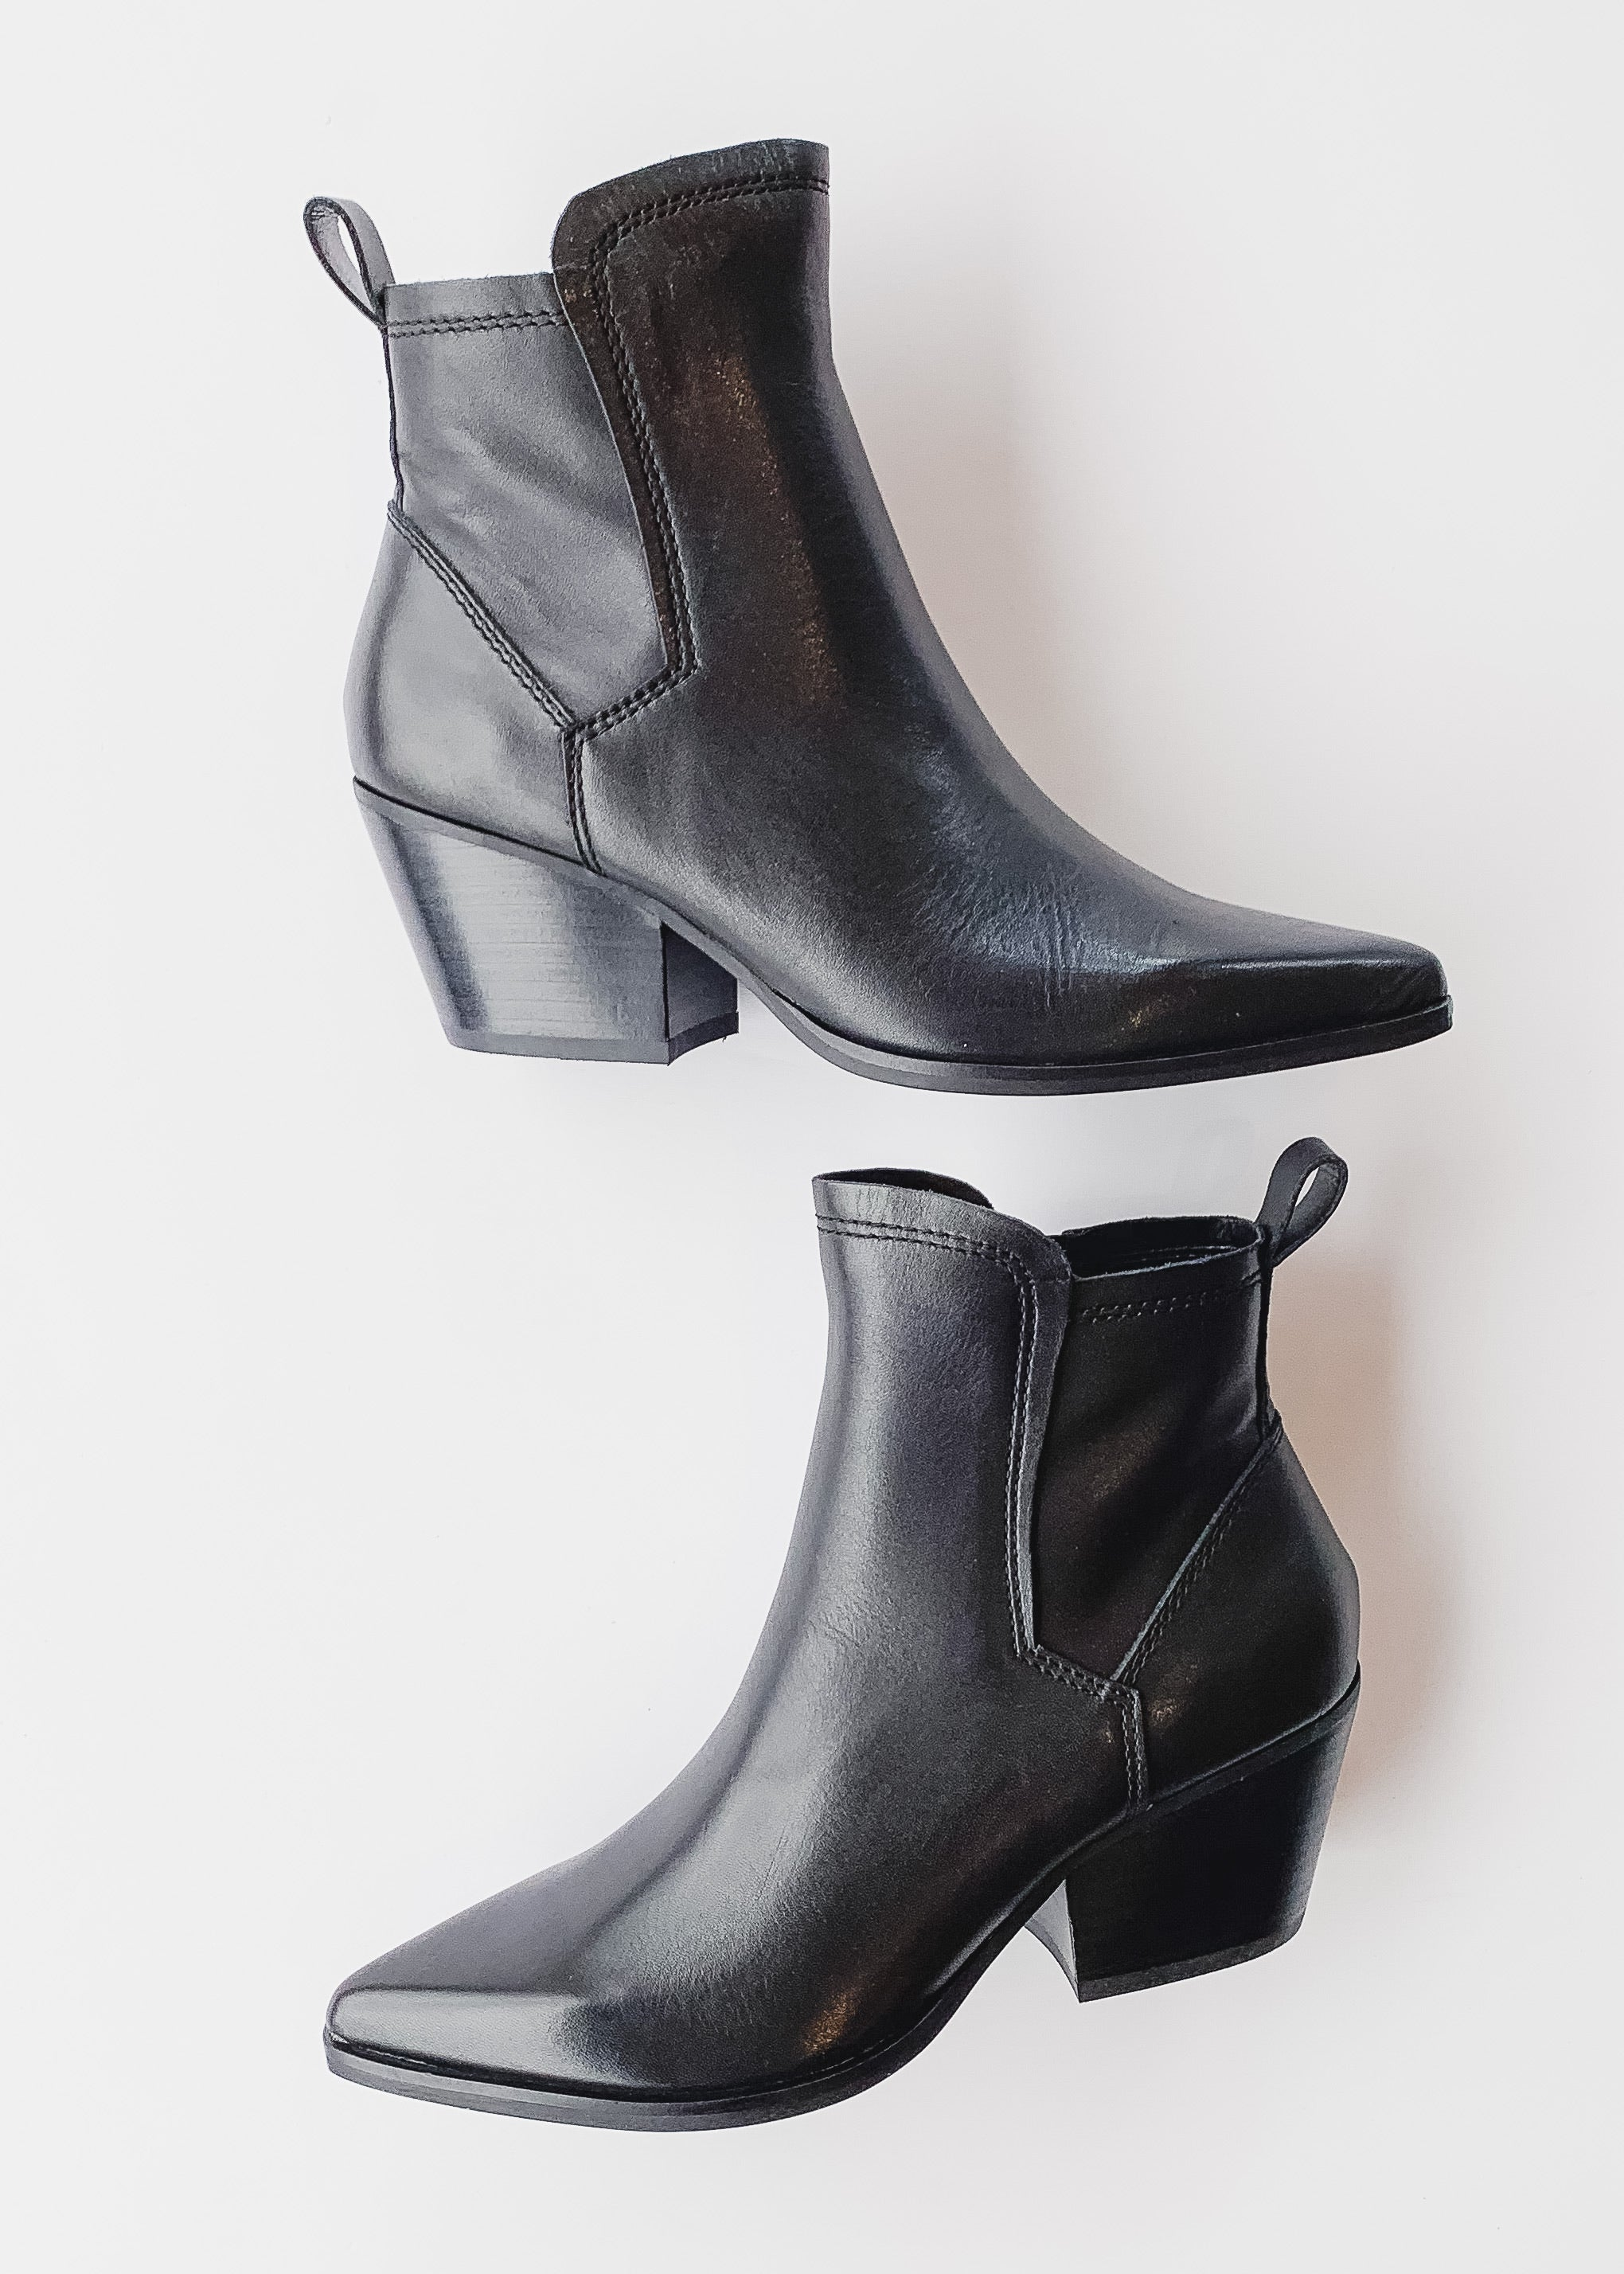 Dolce Vita Sammey Booties -Black Leather